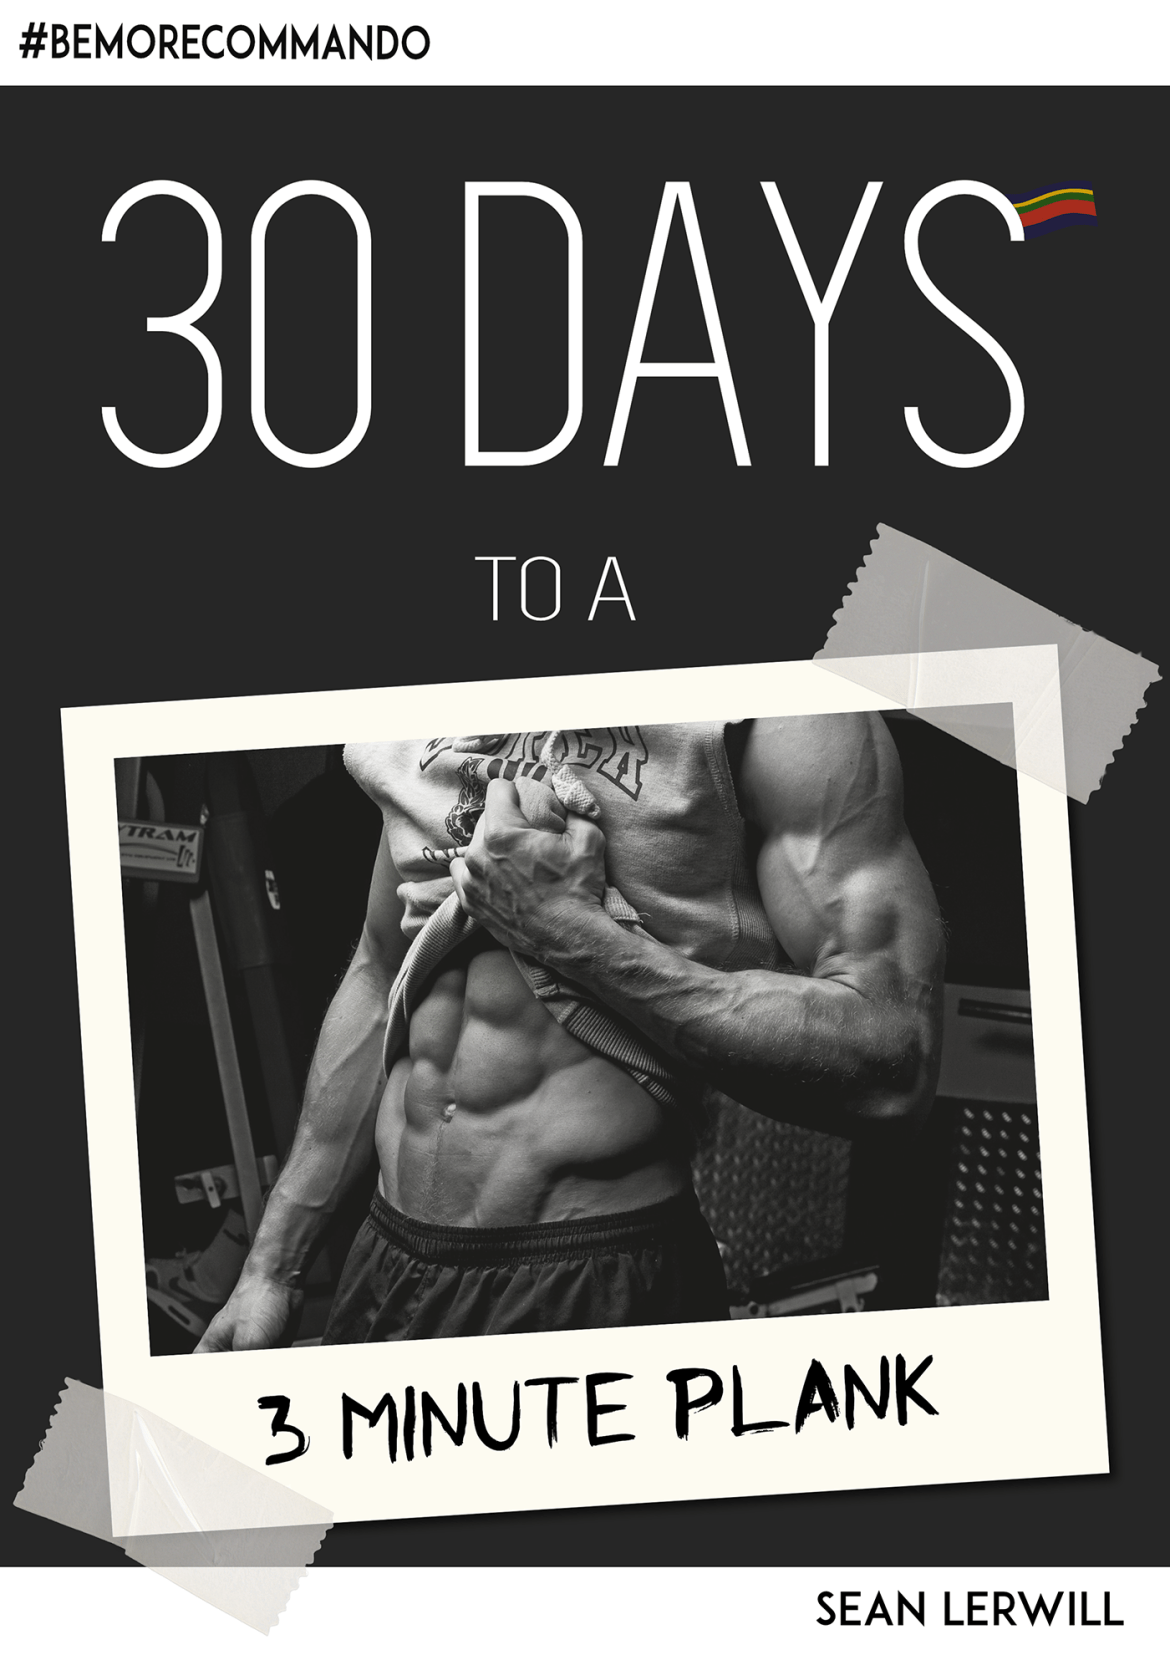 30 Days to a 3 Minute Plank